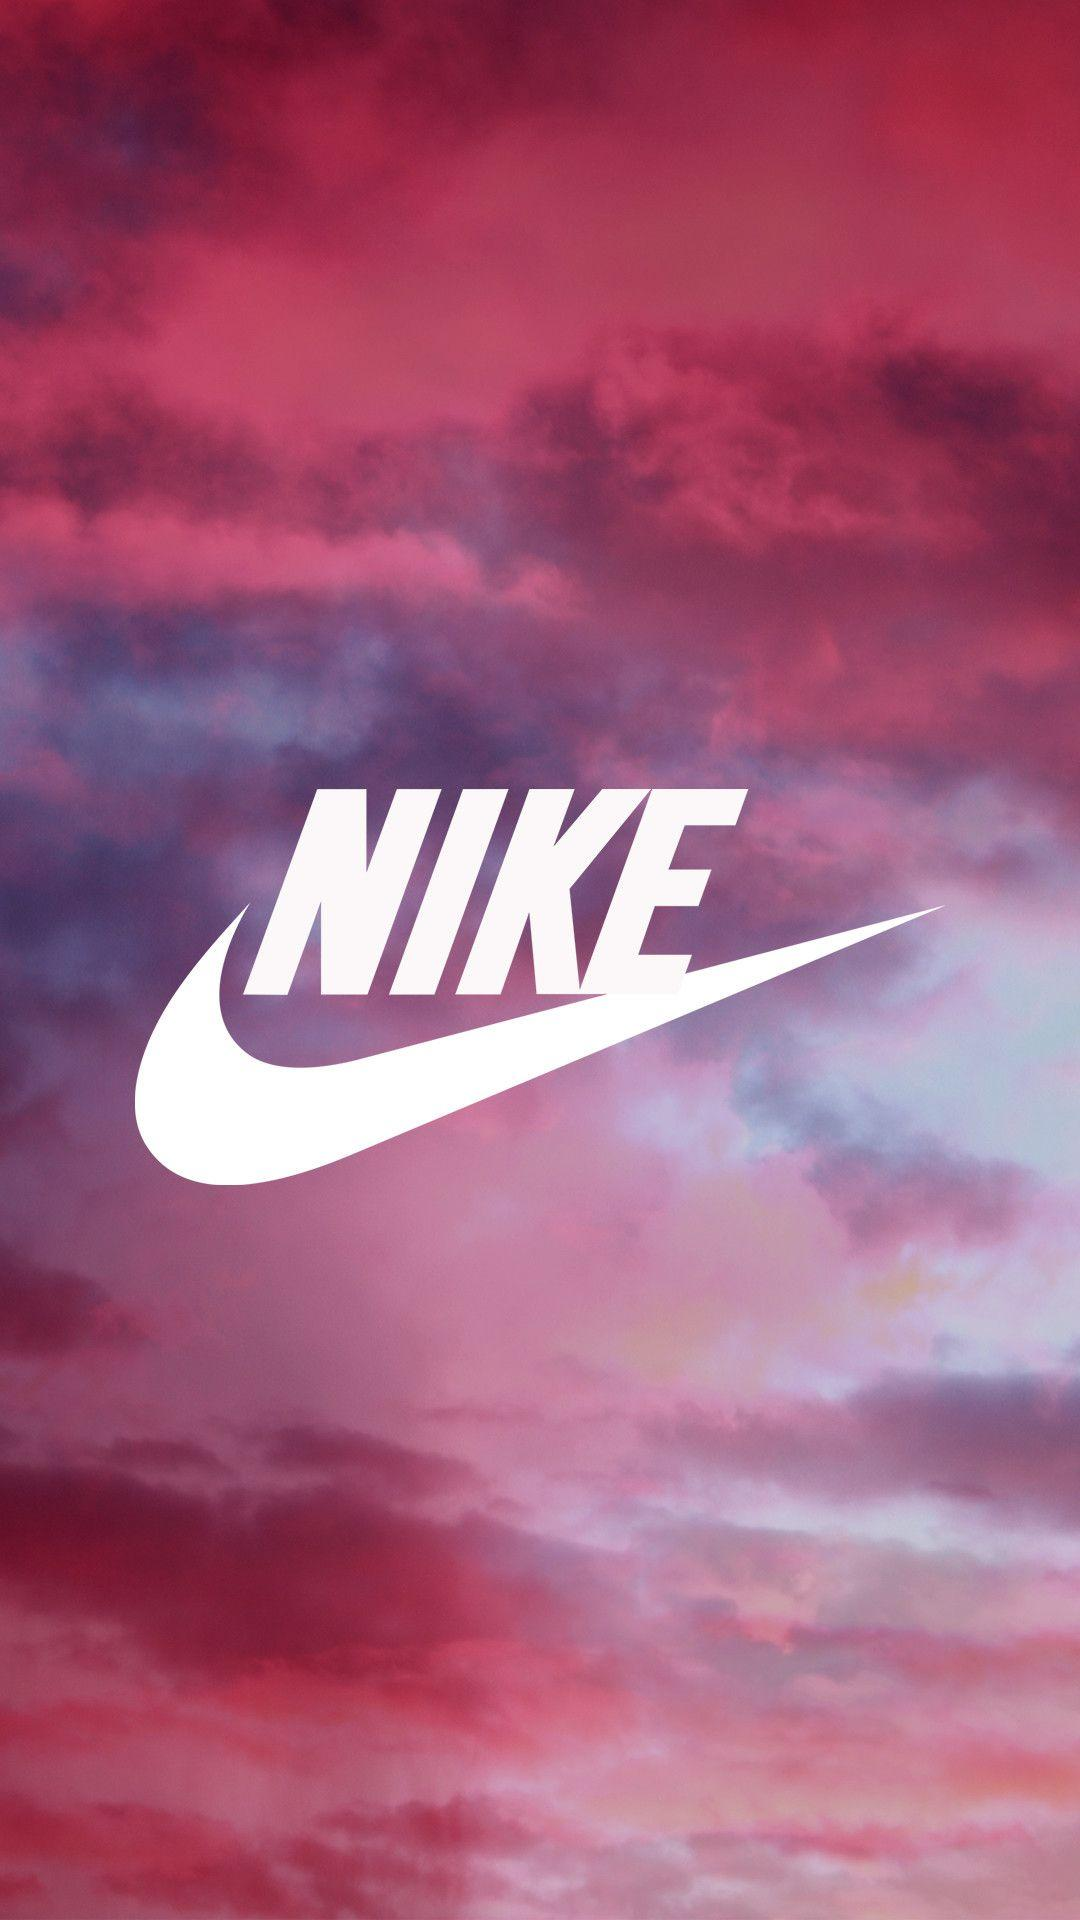 Dope Nike Wallpapers